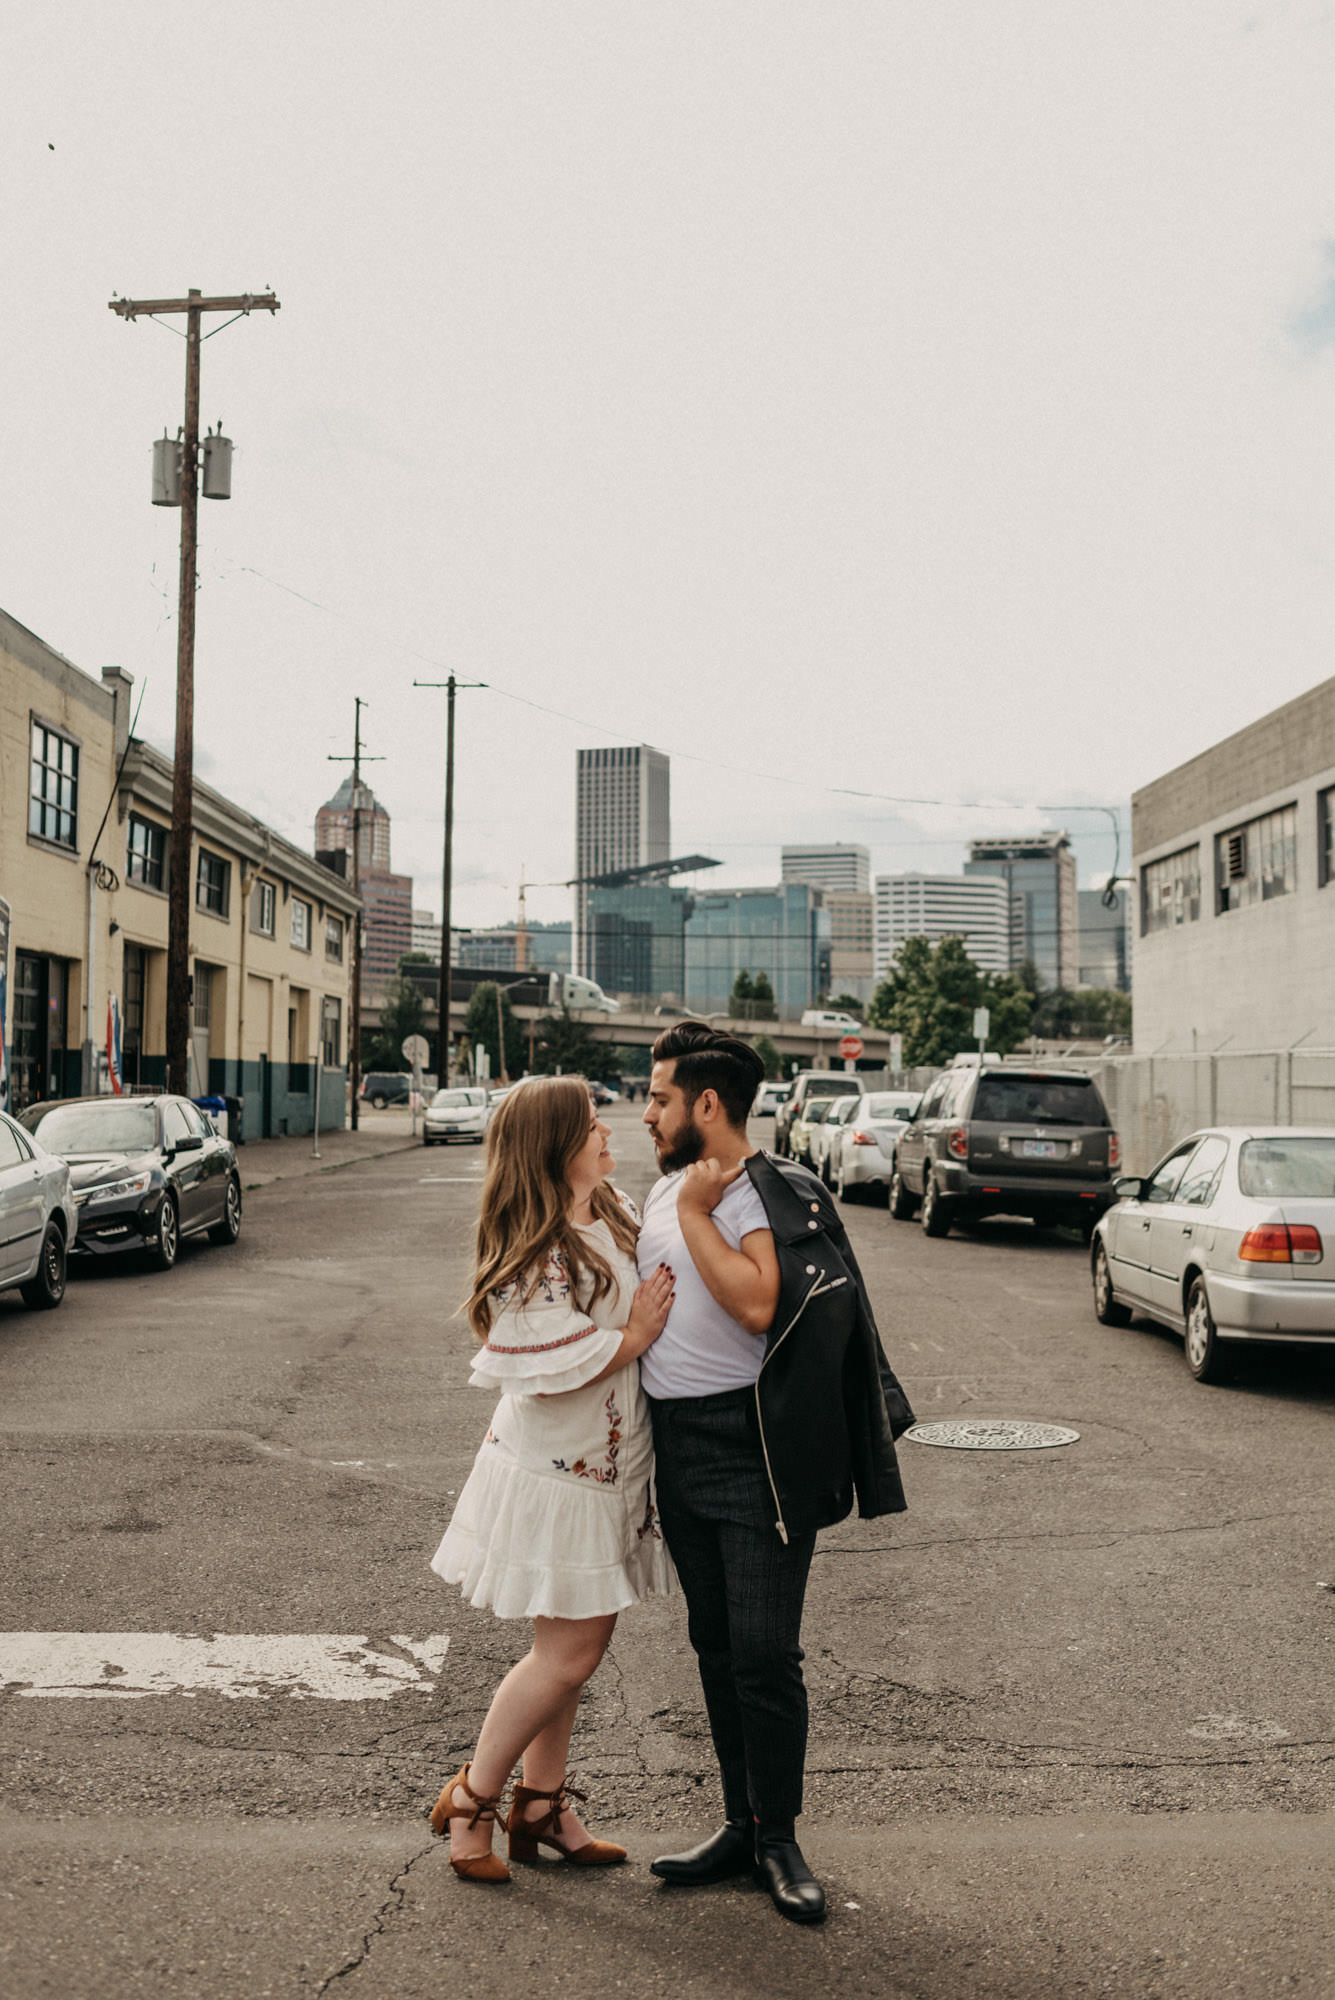 engagement-industrial-disctrict-cityscape-portland-downtown-4798.jpg